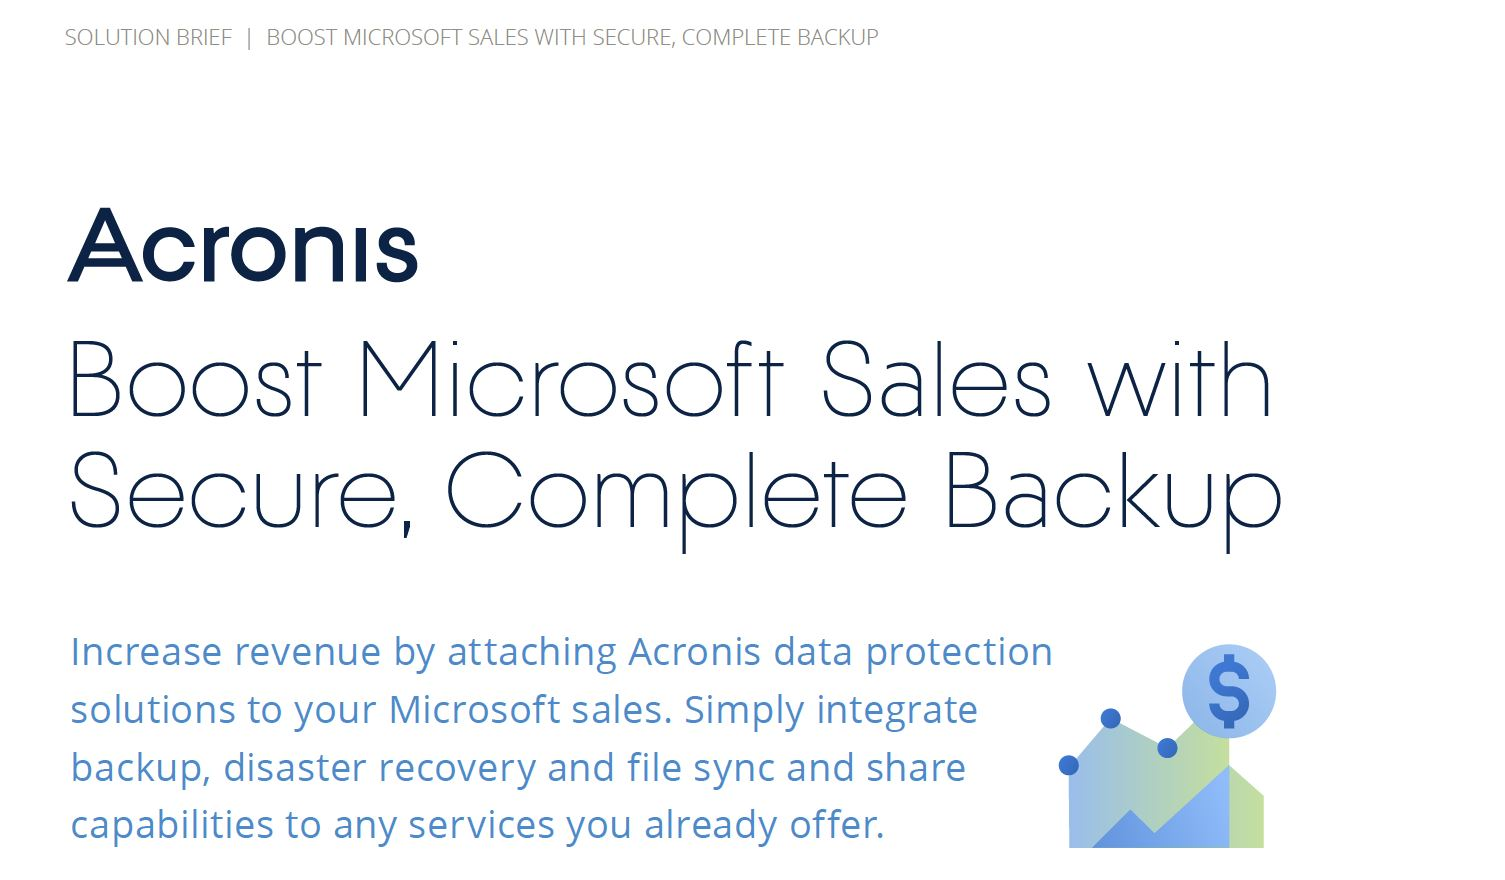 Boost Microsoft Sales with Secure, Complete Backup